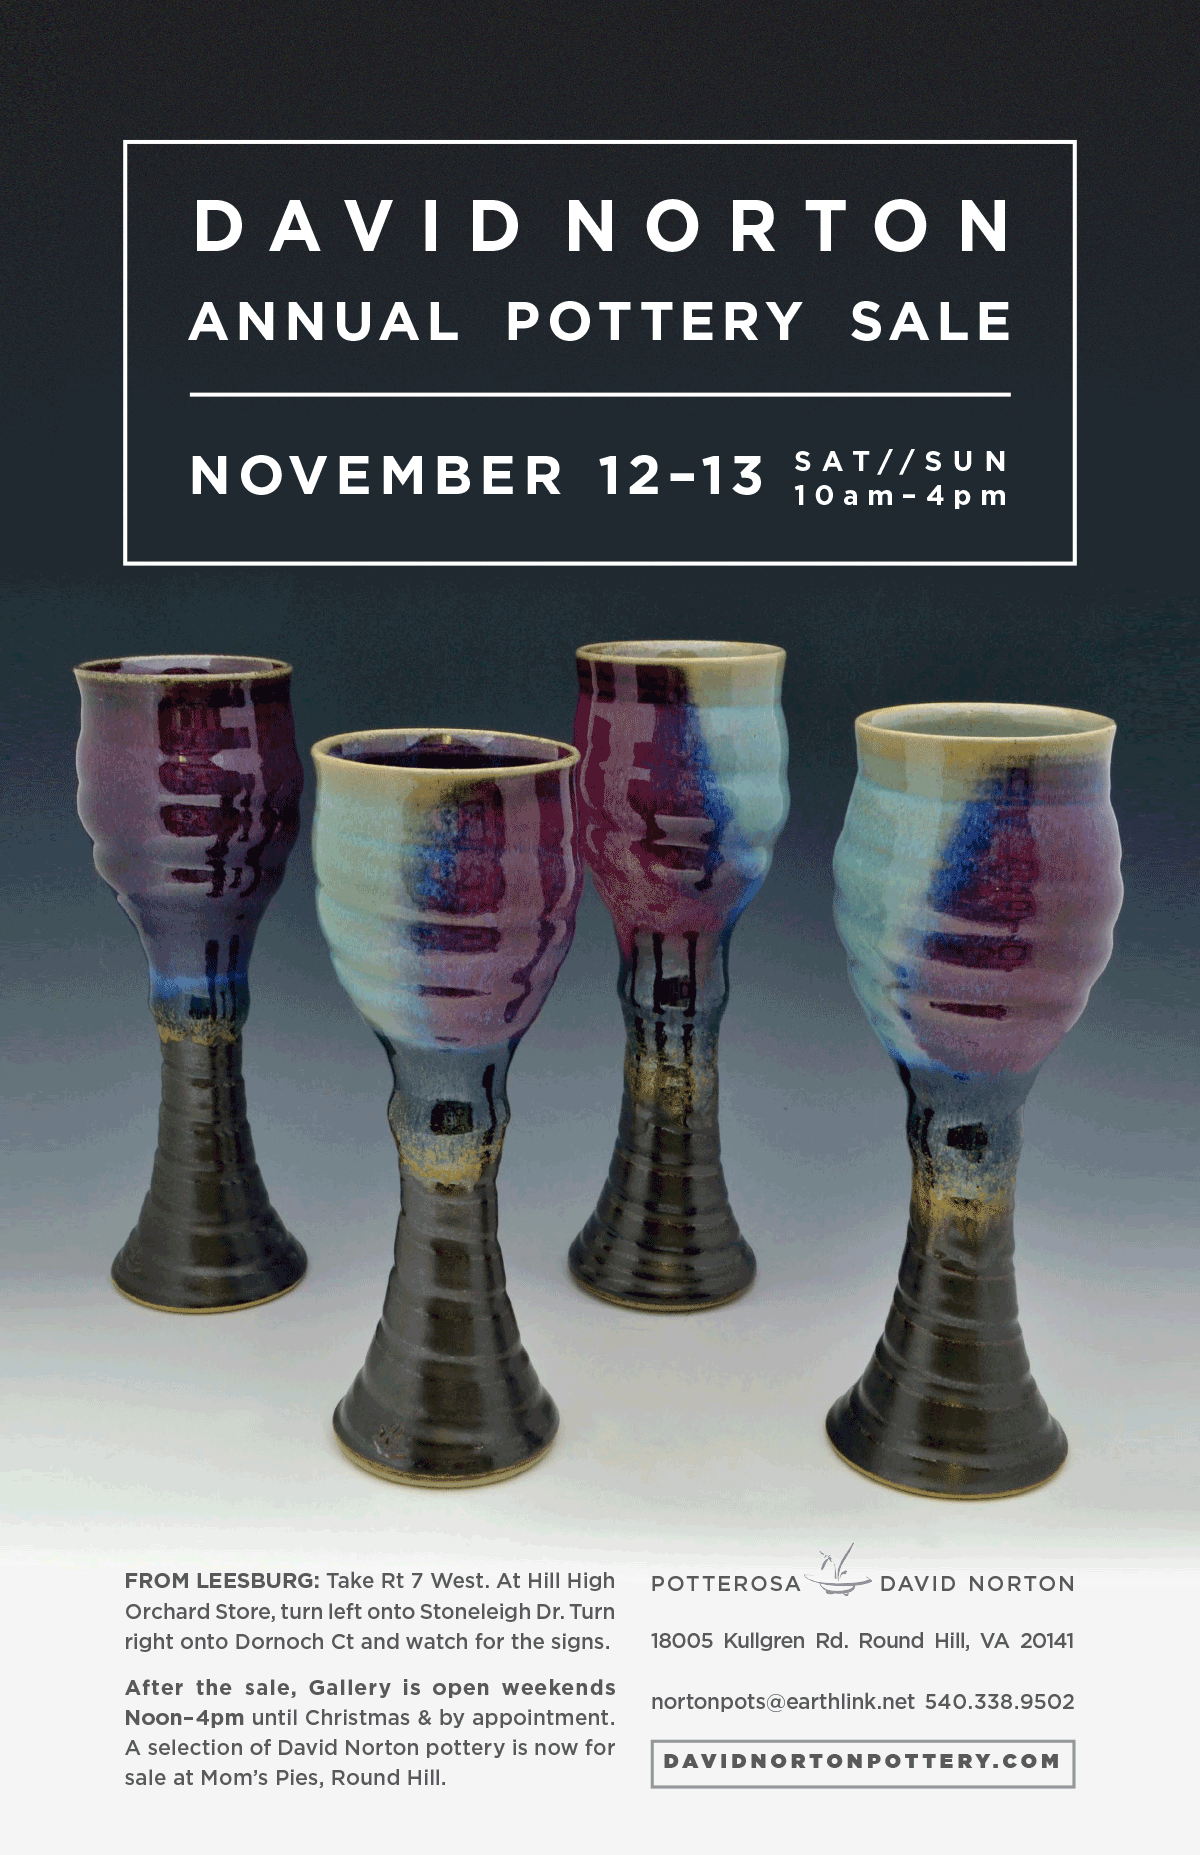 Annual Potter Sale Poster